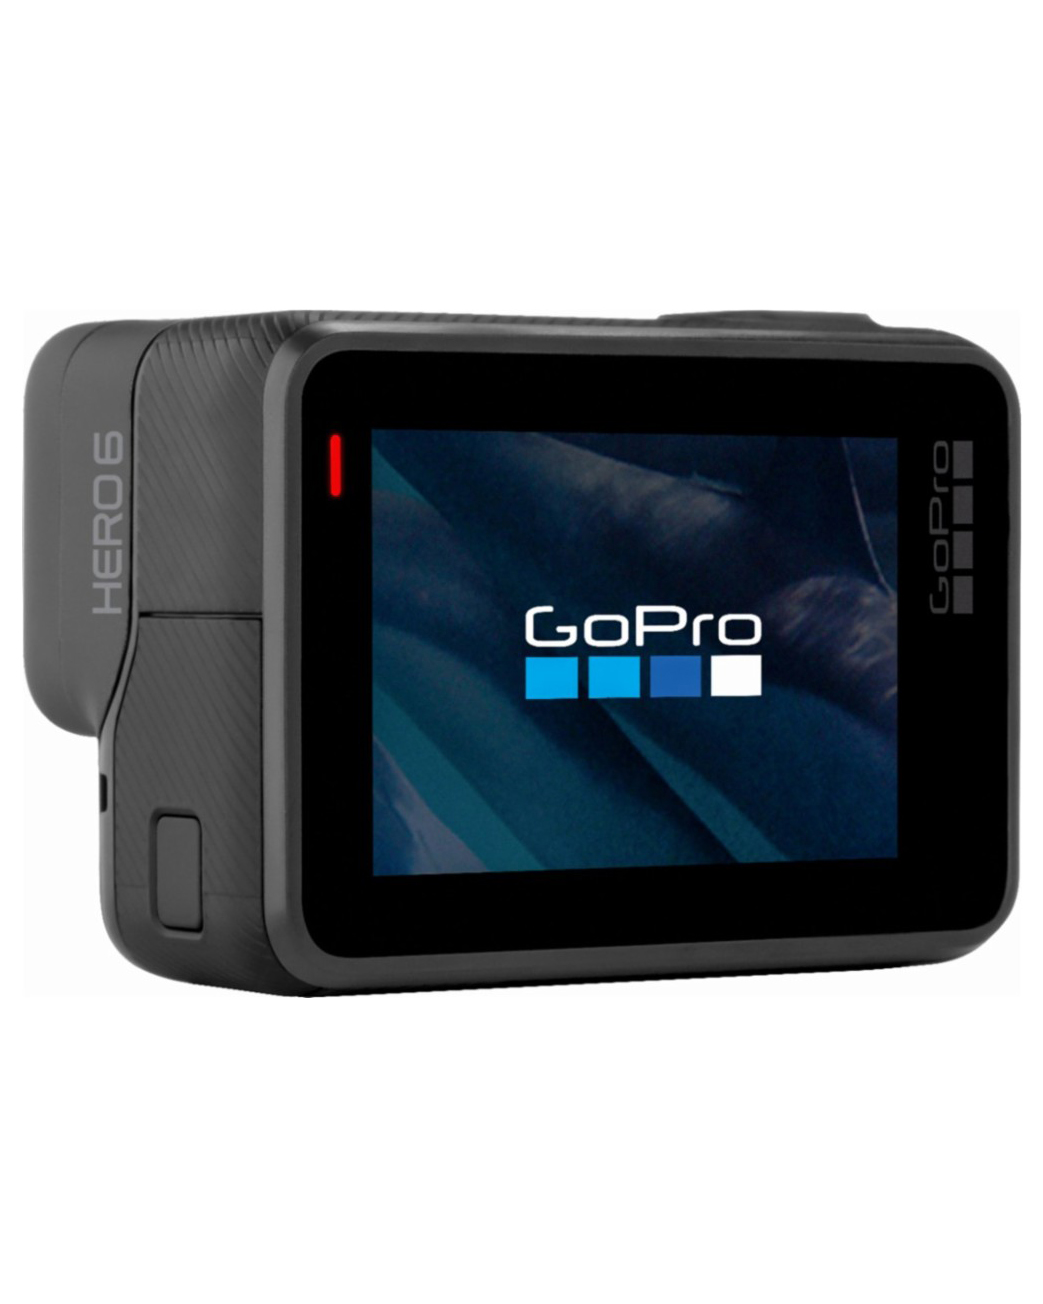 Best Tech Gifts for Christmas or Birthdays: gopro hero waterproof action camera